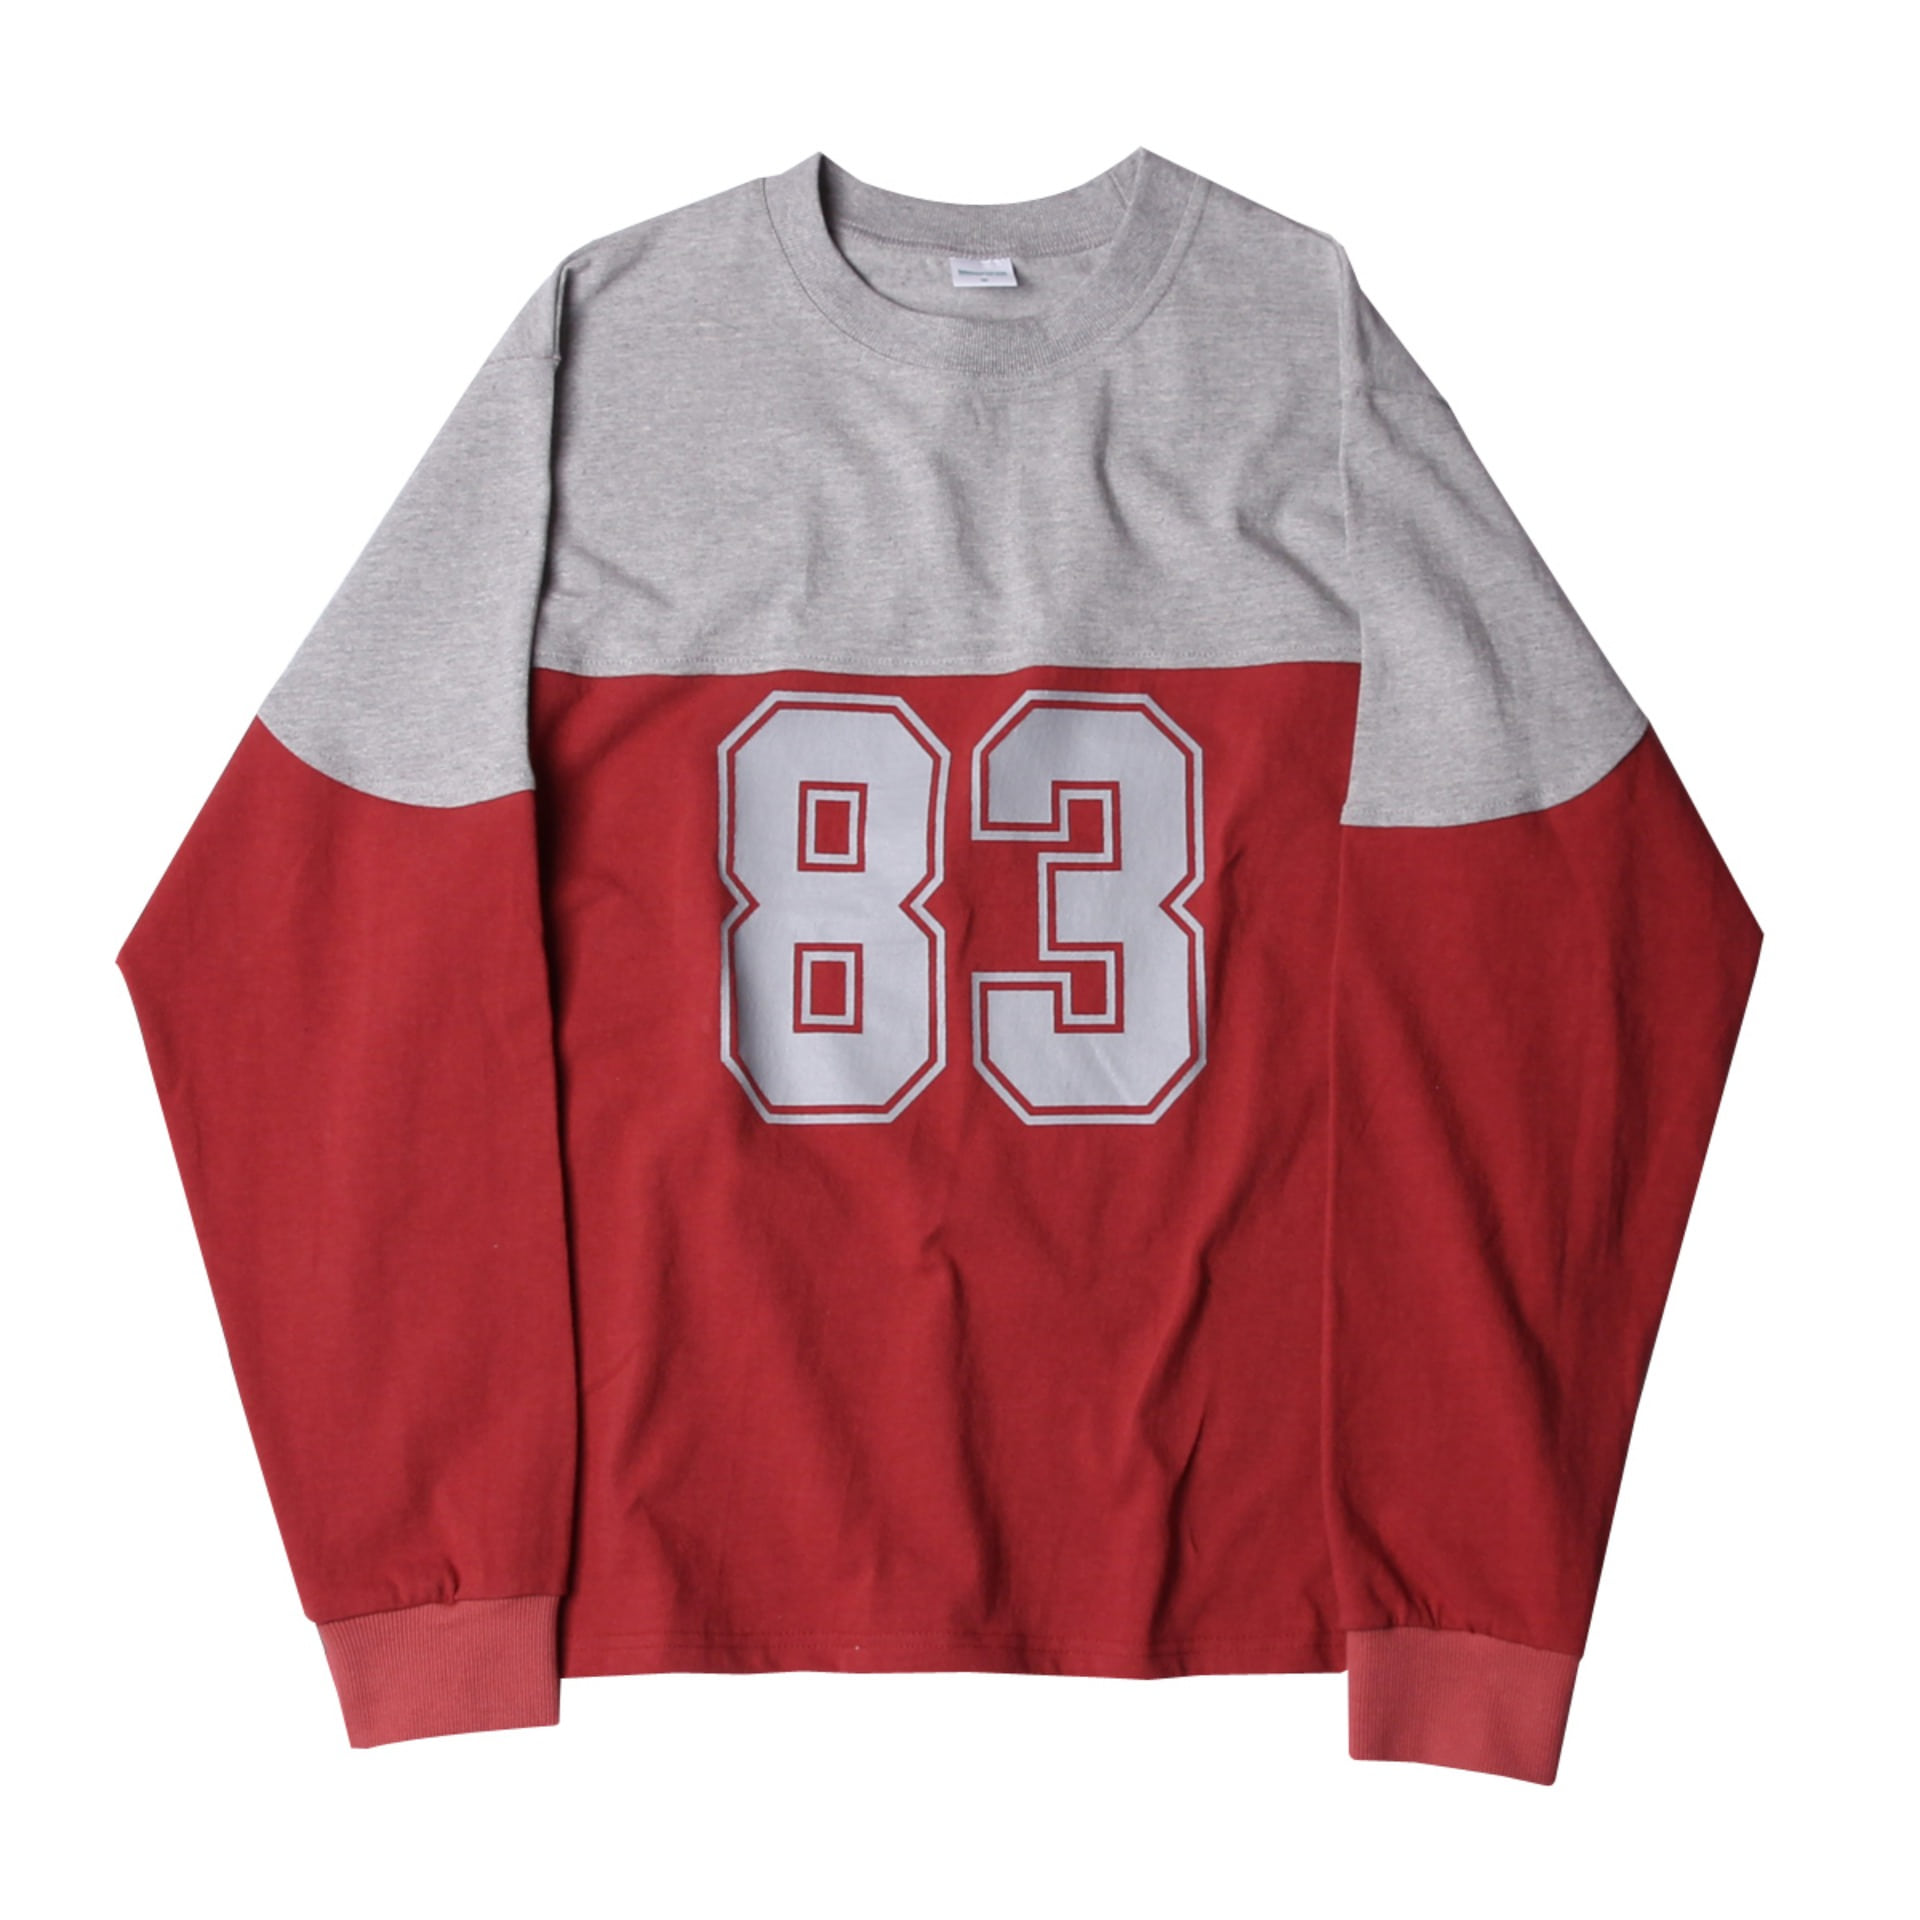 83 FOOTBALL LONG TEE (Grey x Red)